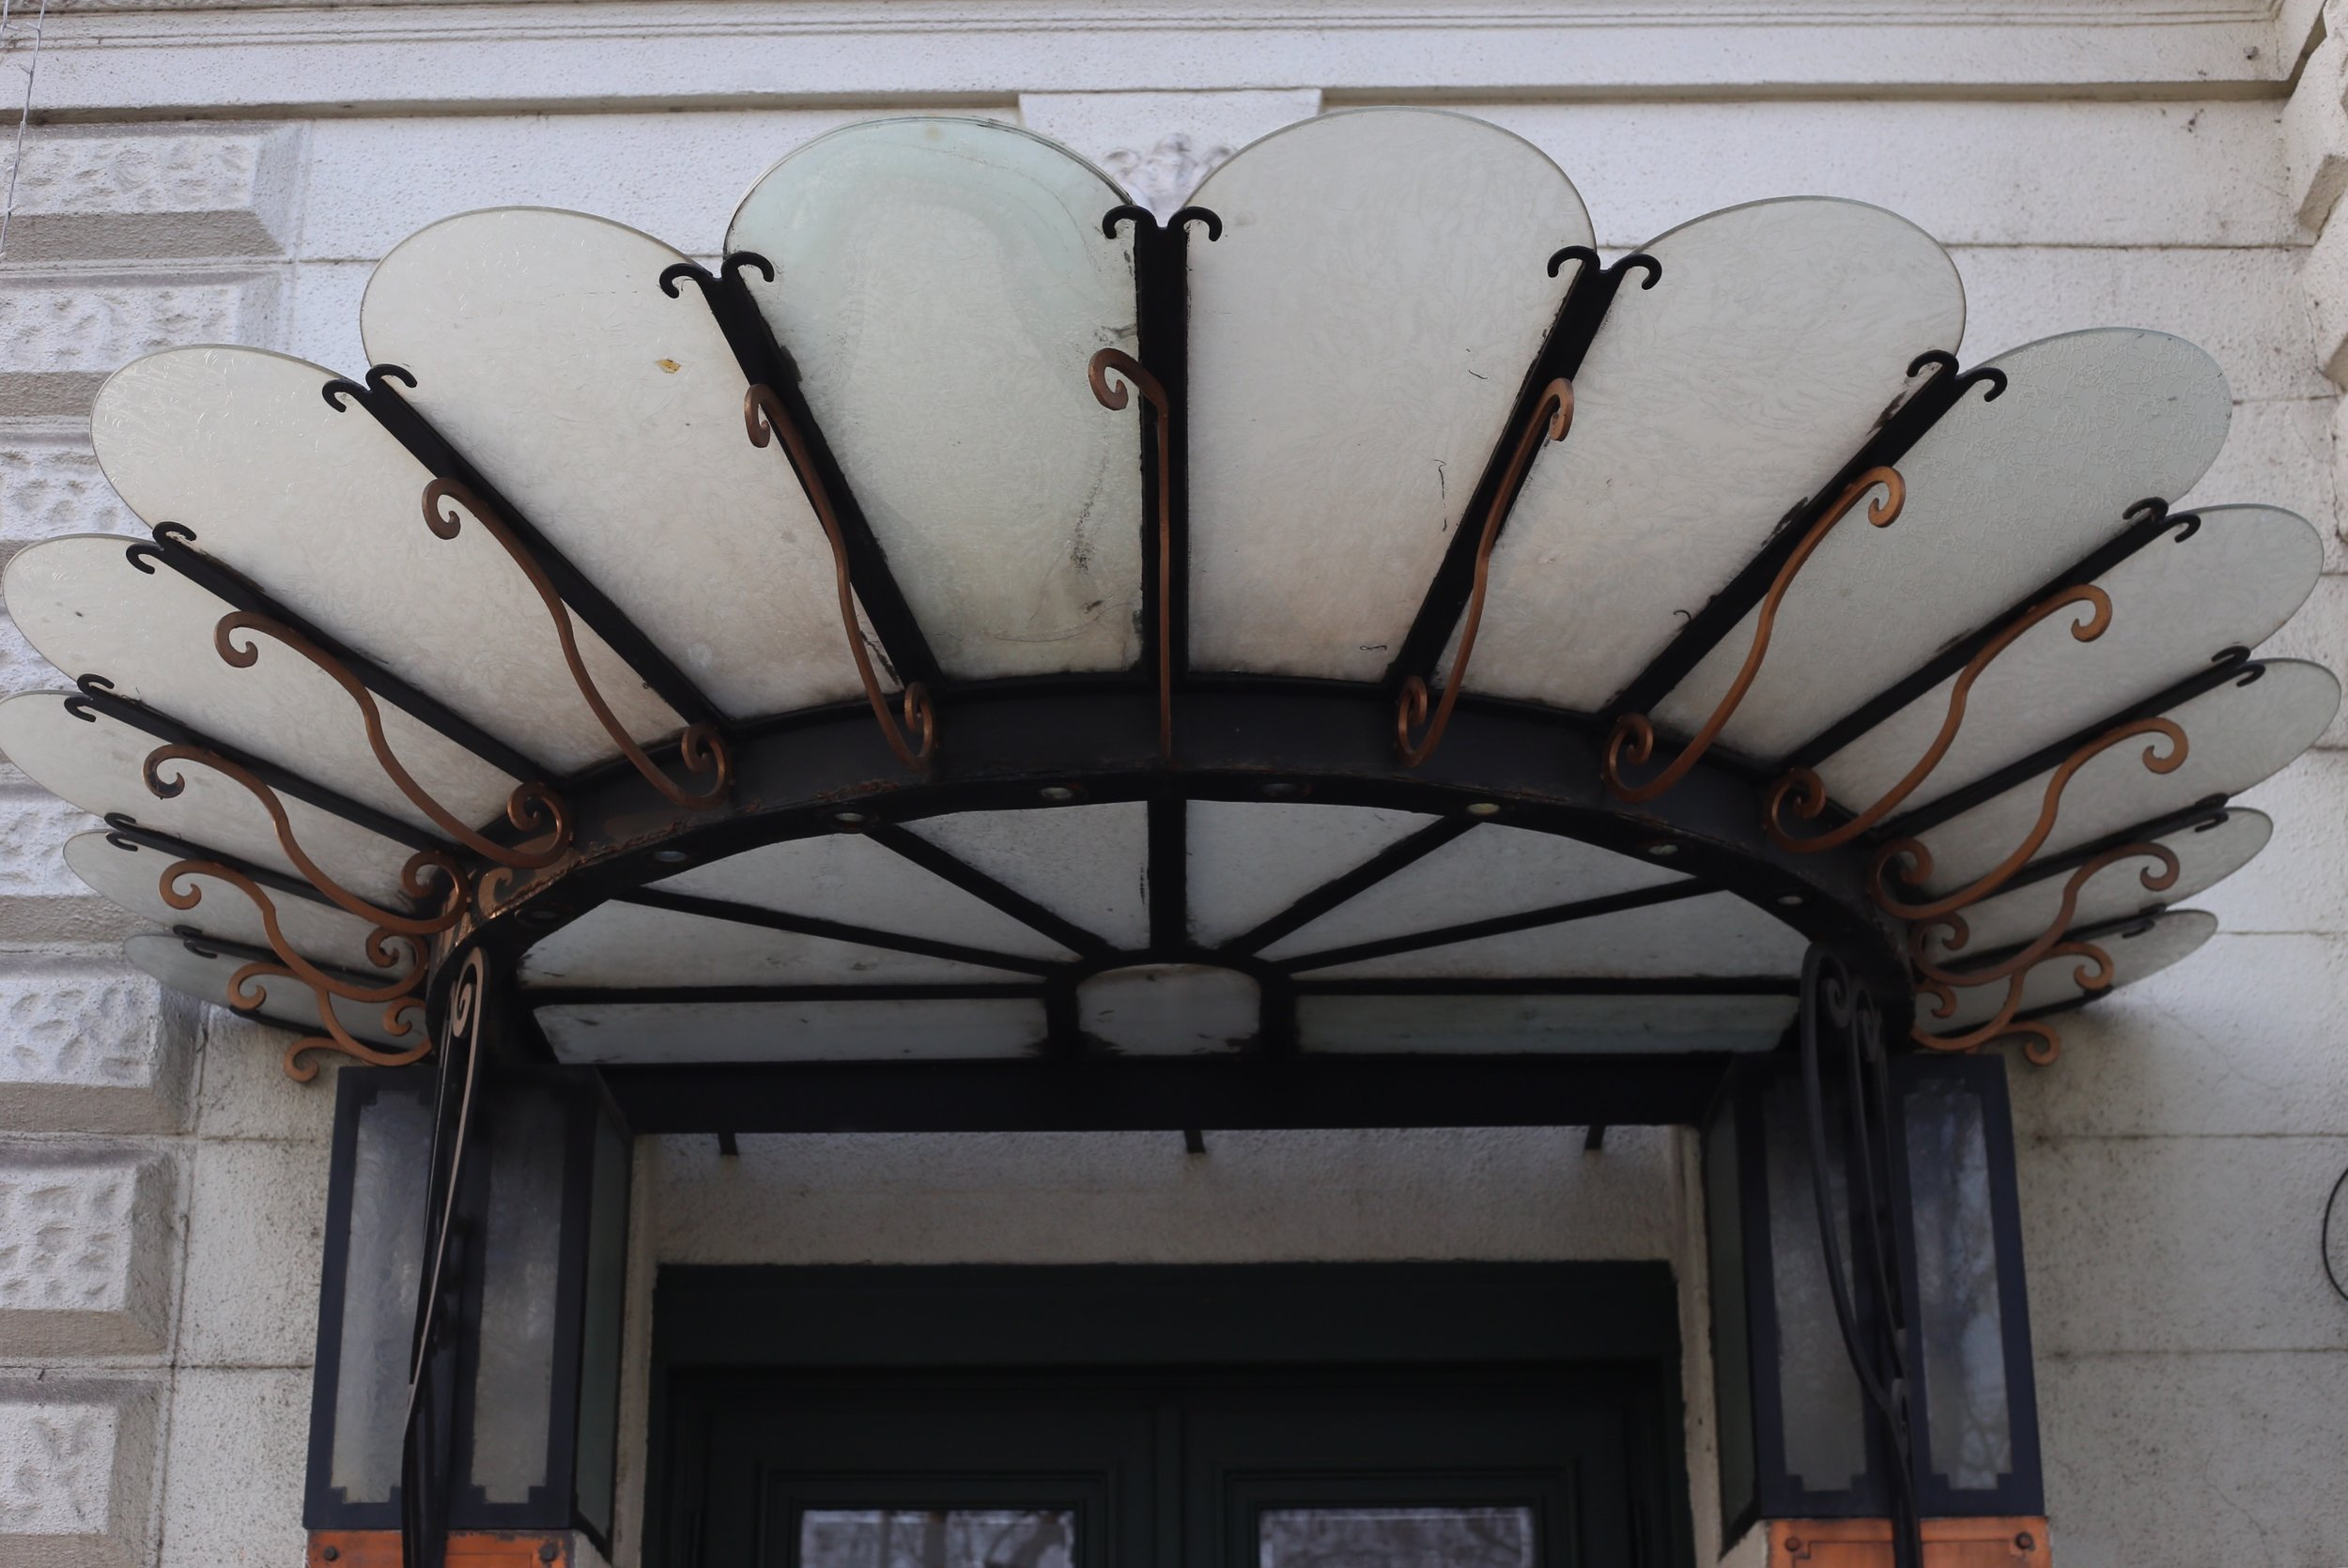 An art-nouveau canopy or awning, made of glass and iron, over a hotel door.